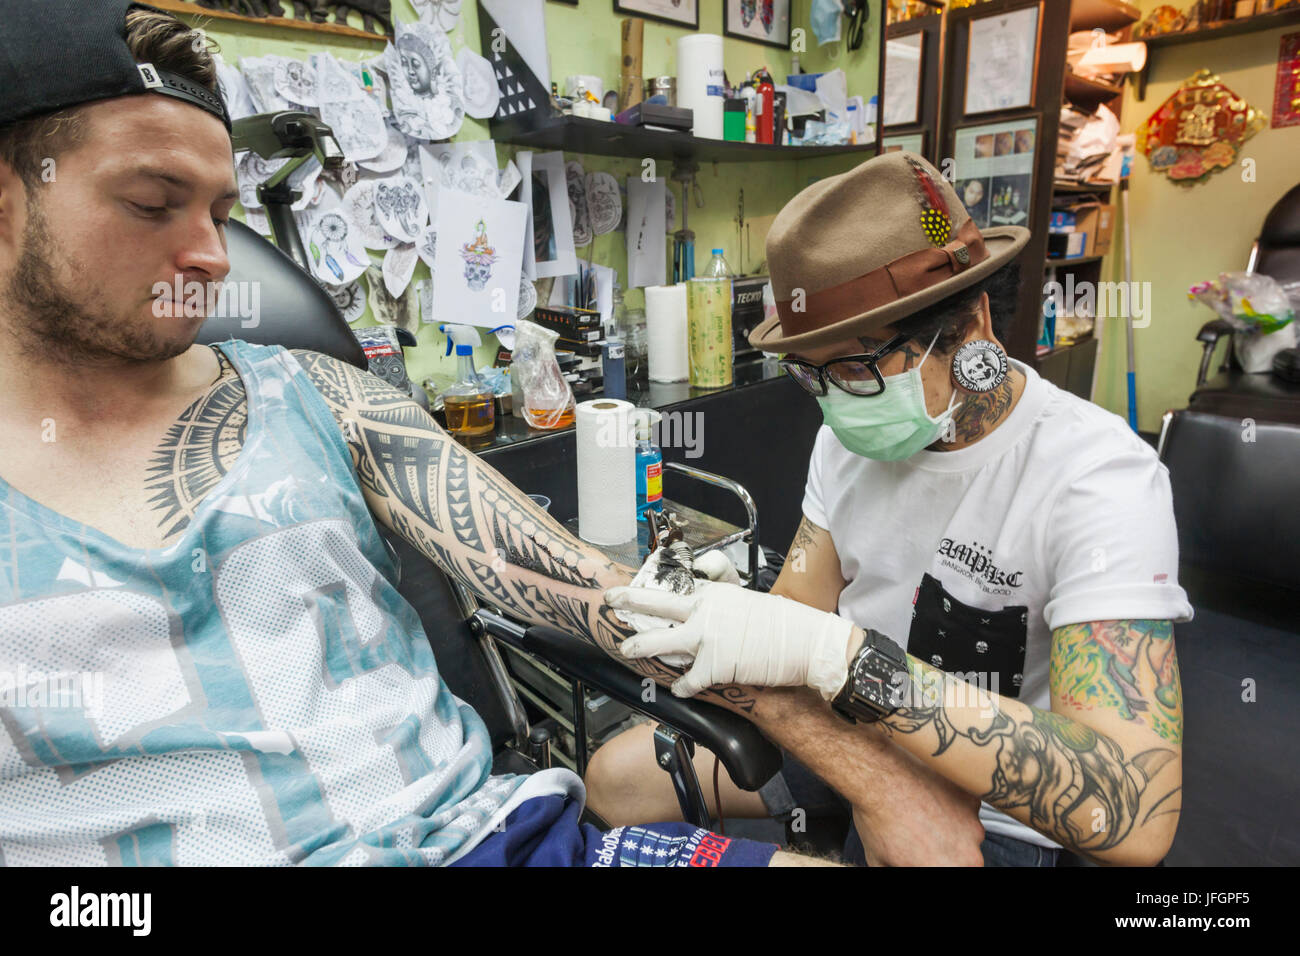 Thailand, Bangkok, Khaosan Road, Tattoo Artist at Work - Stock Image